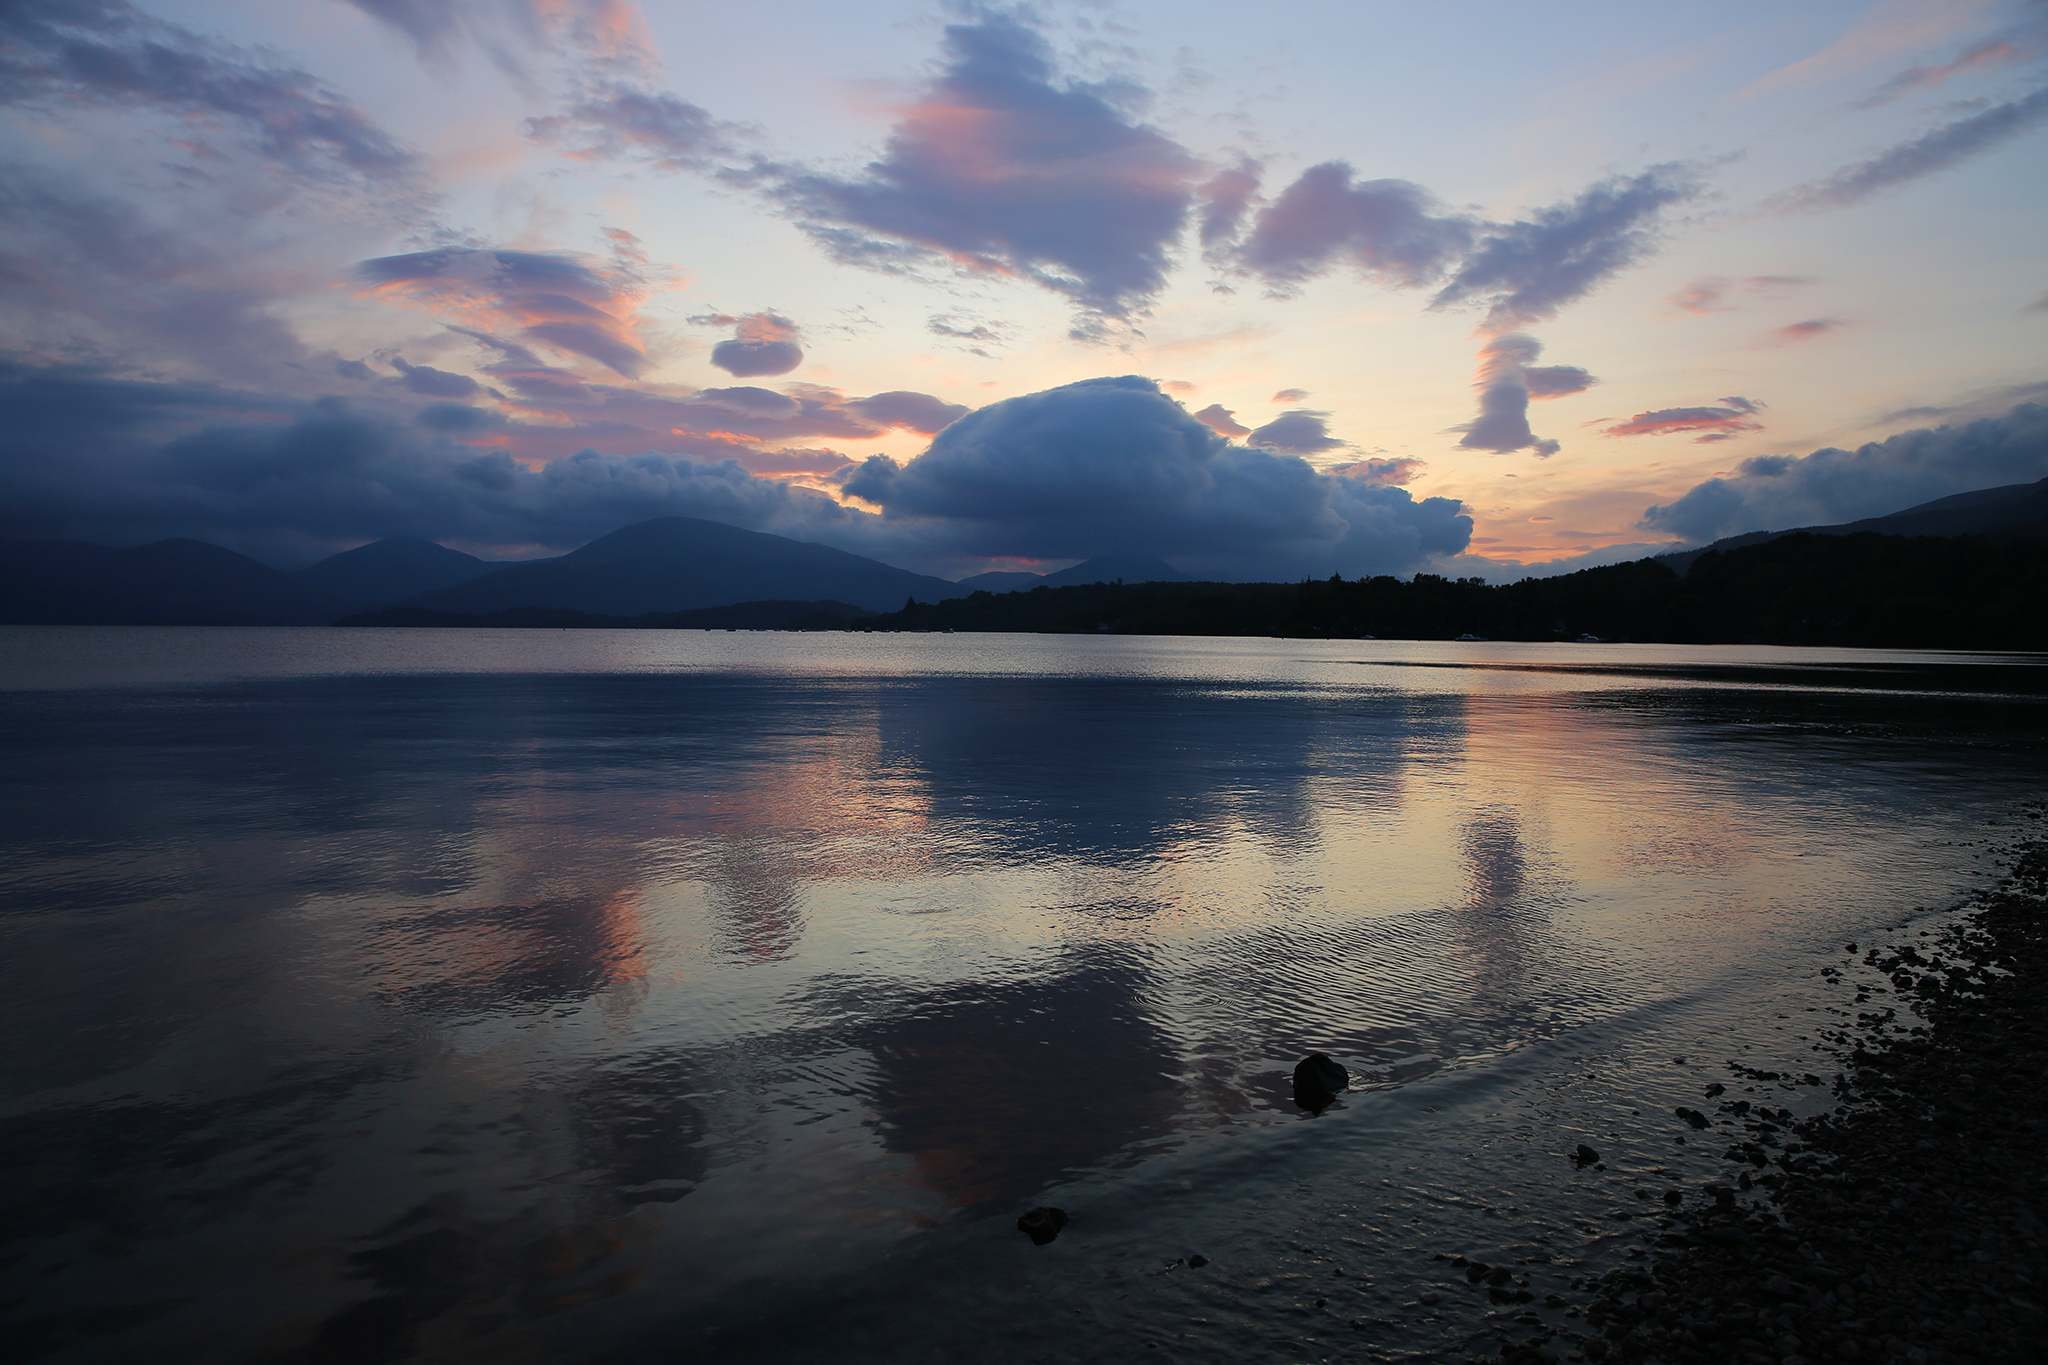 Loch Lomond, Scotland by Zoetica Ebb, 2019